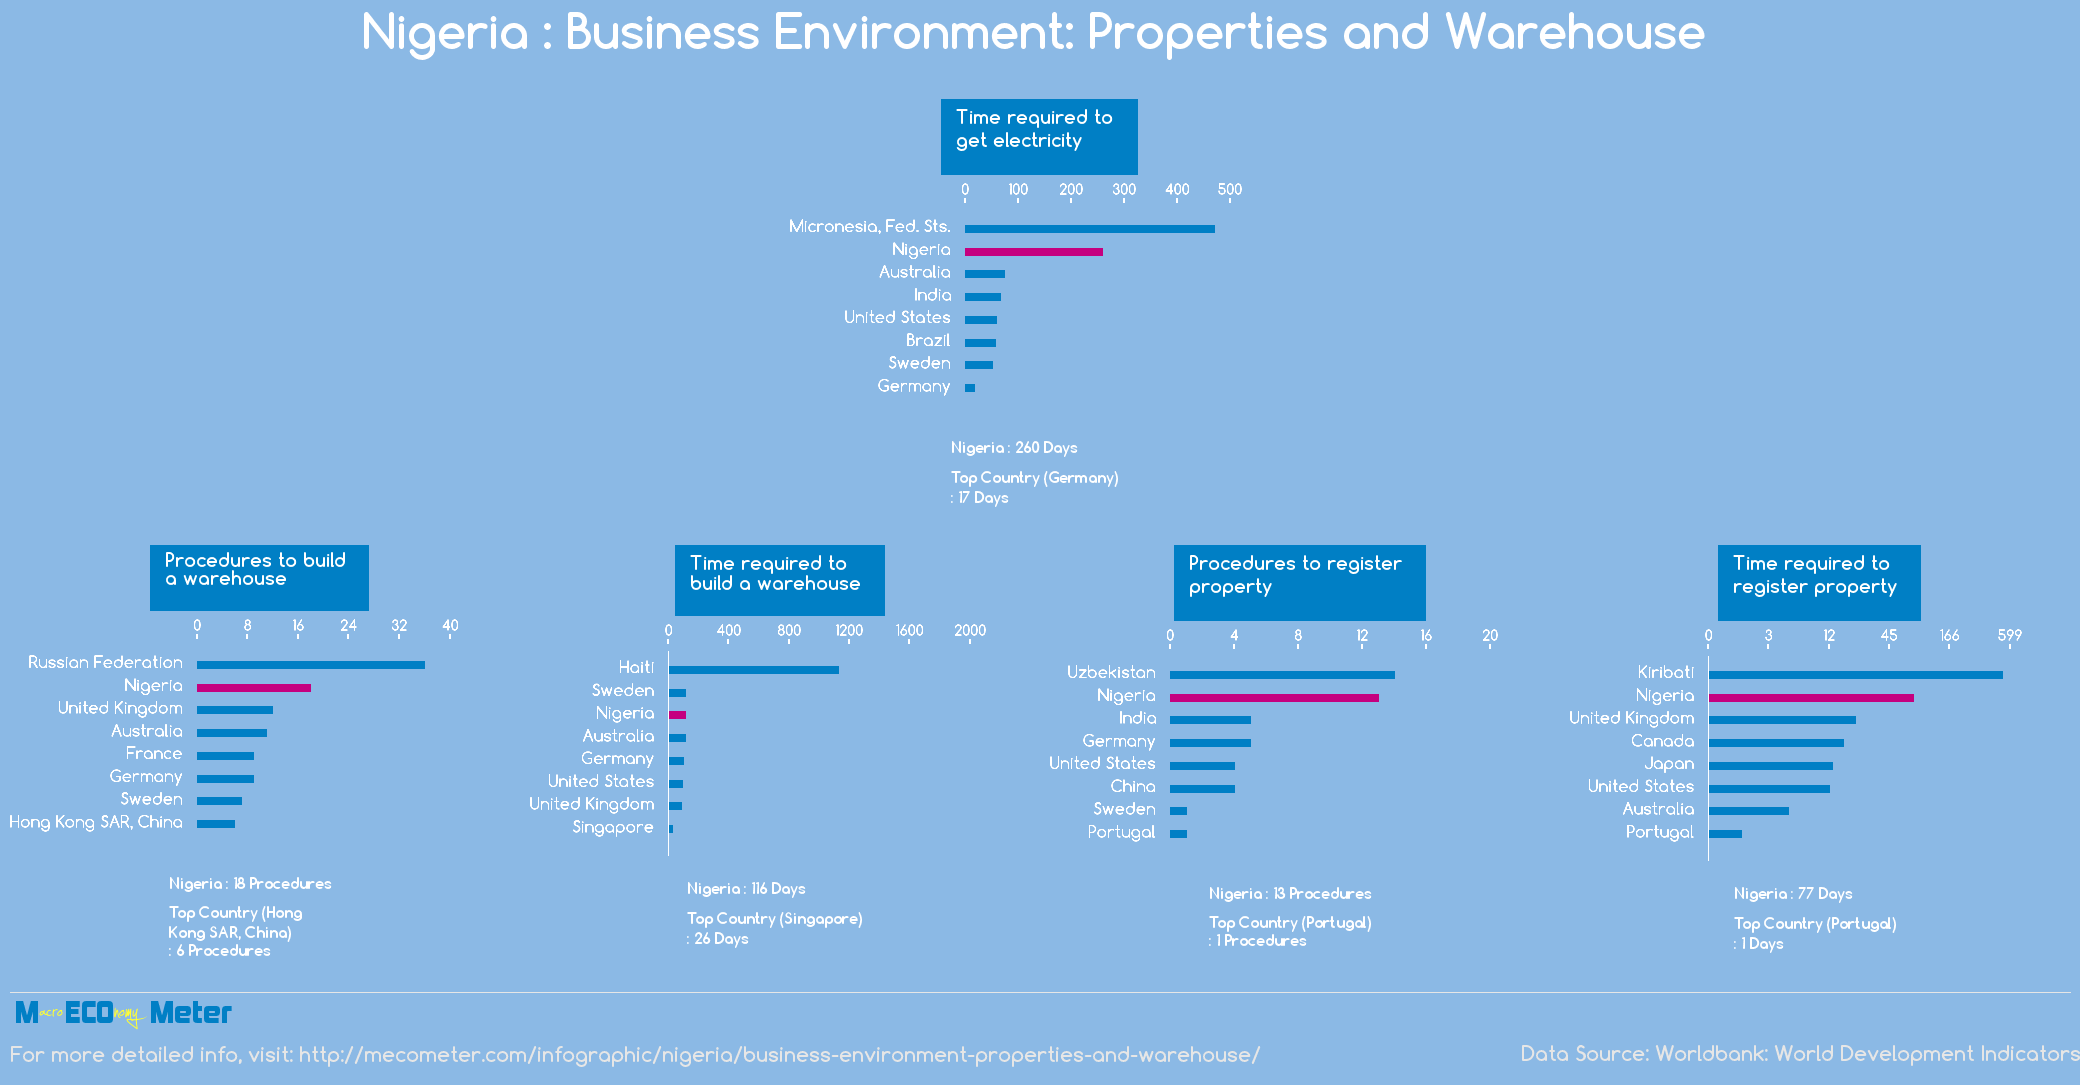 Nigeria : Business Environment: Properties and Warehouse